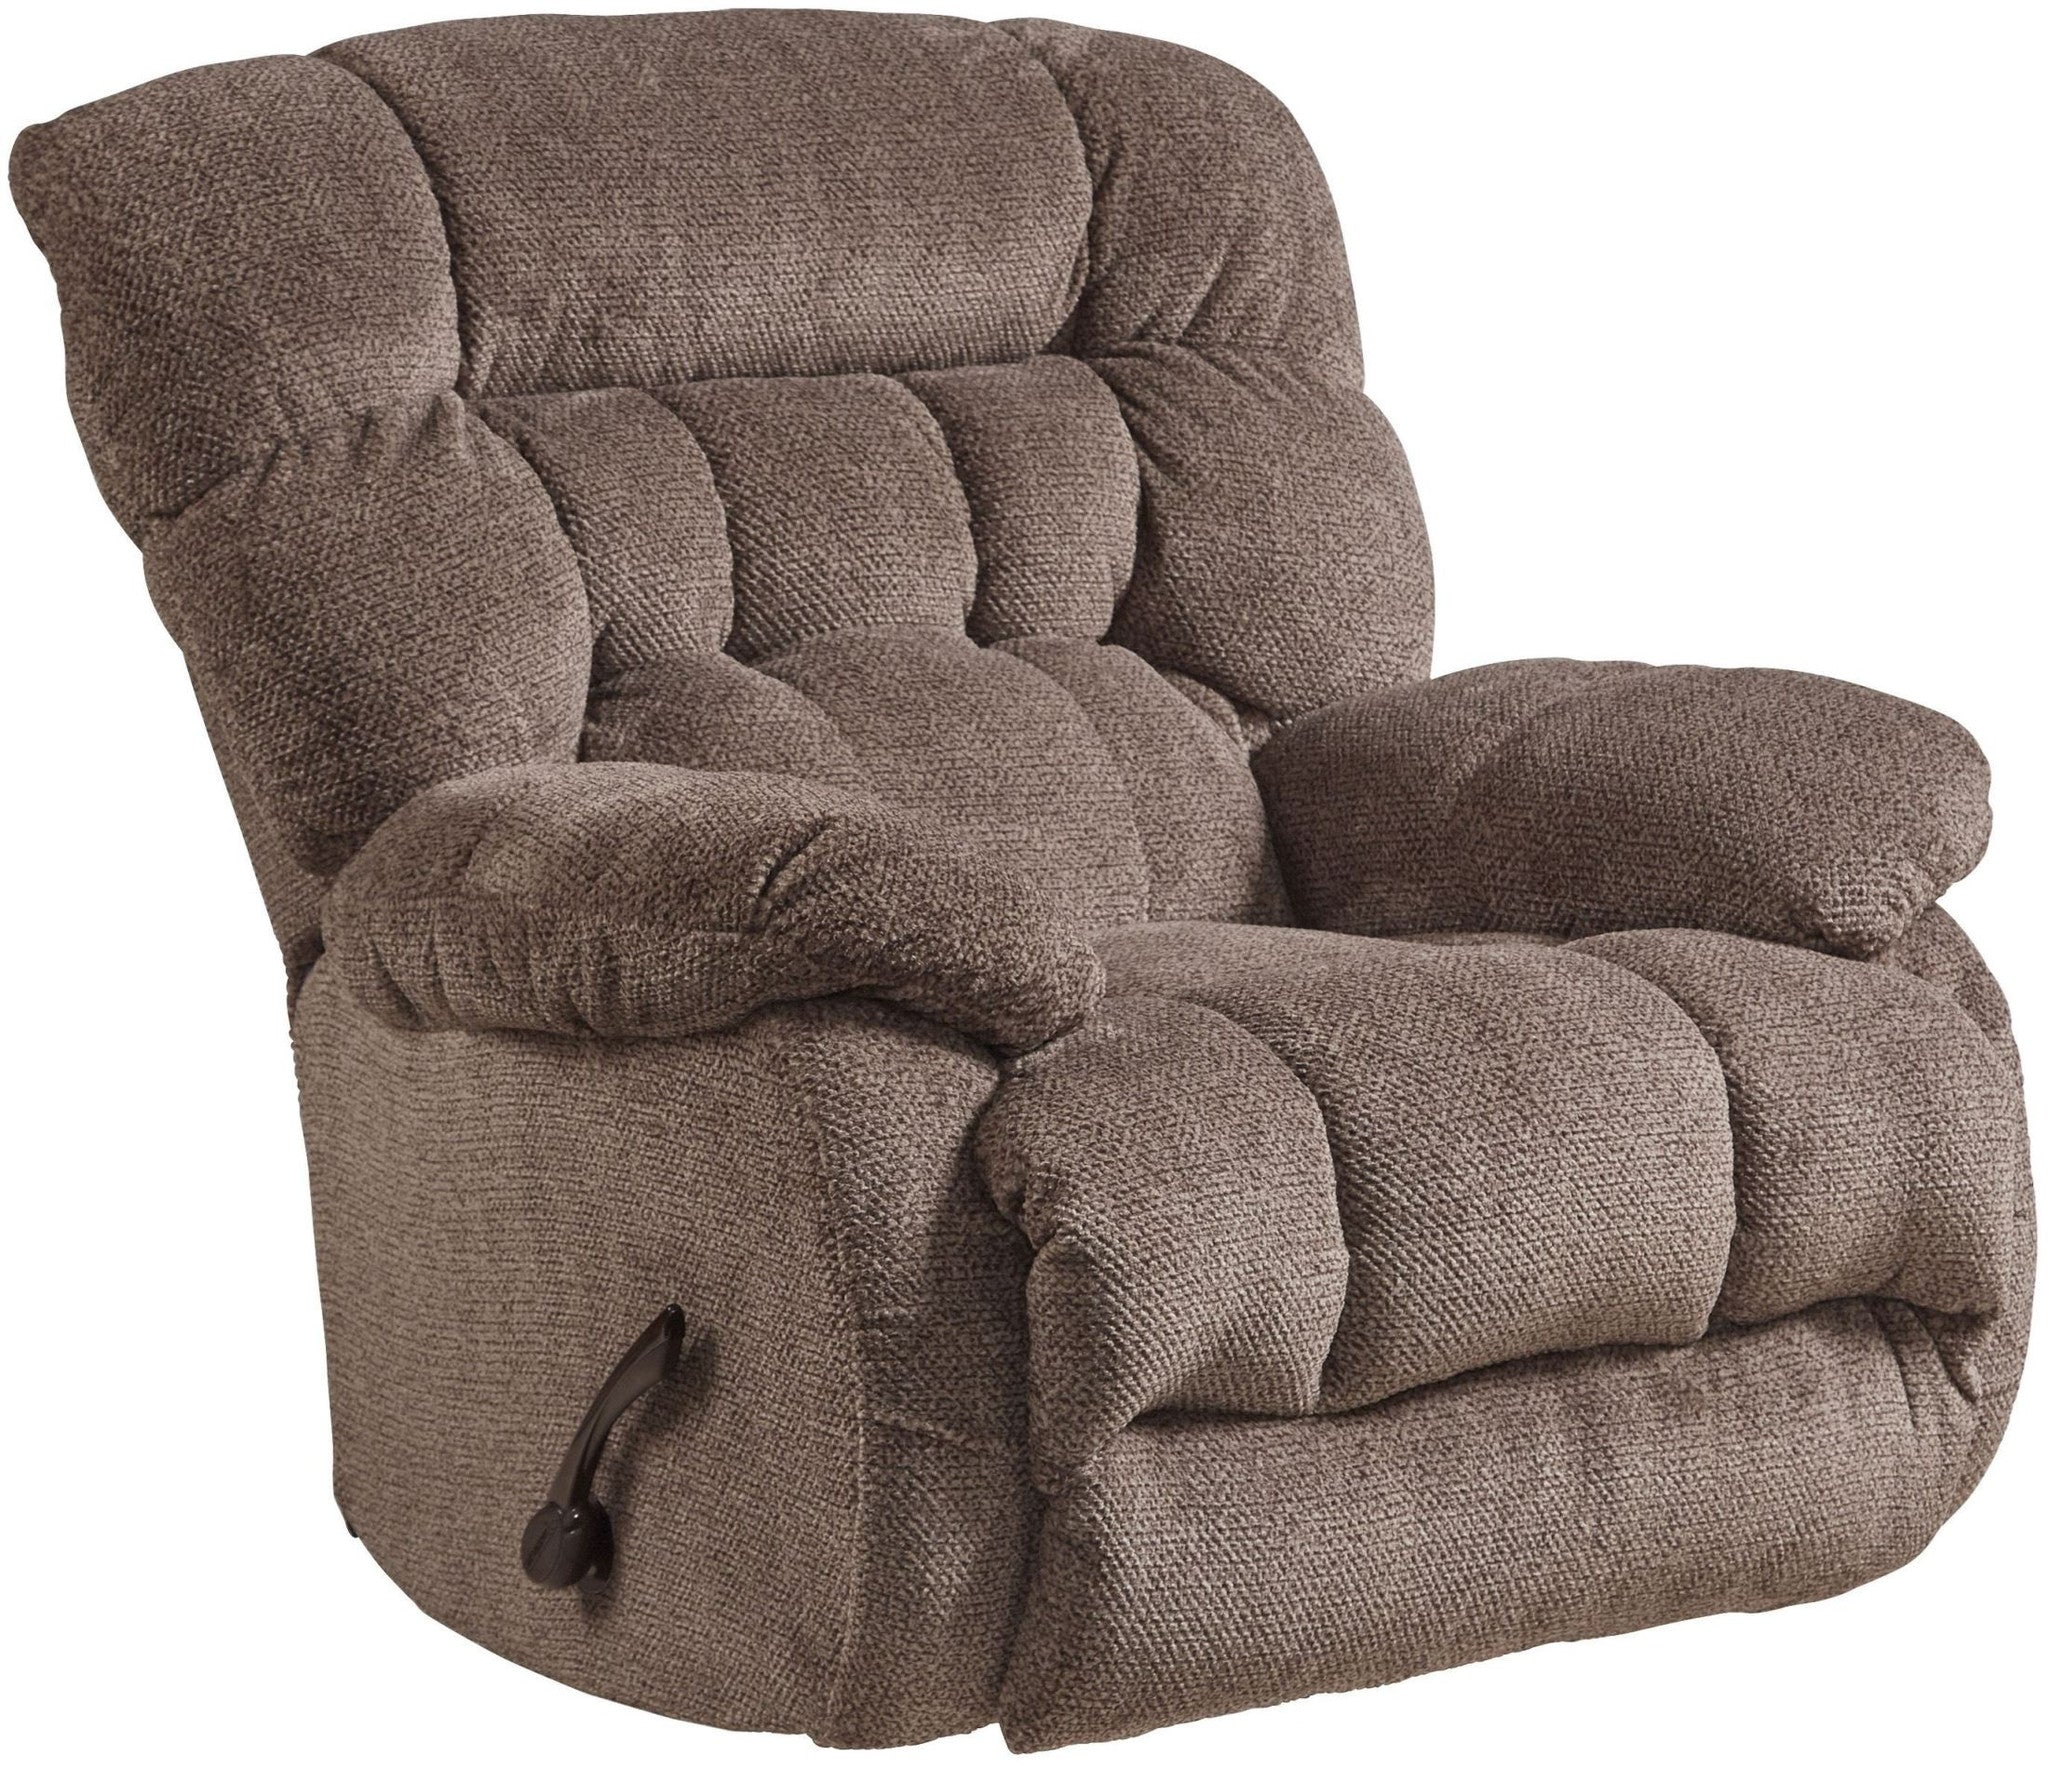 Daly Chateau Chaise Rocker Recliner